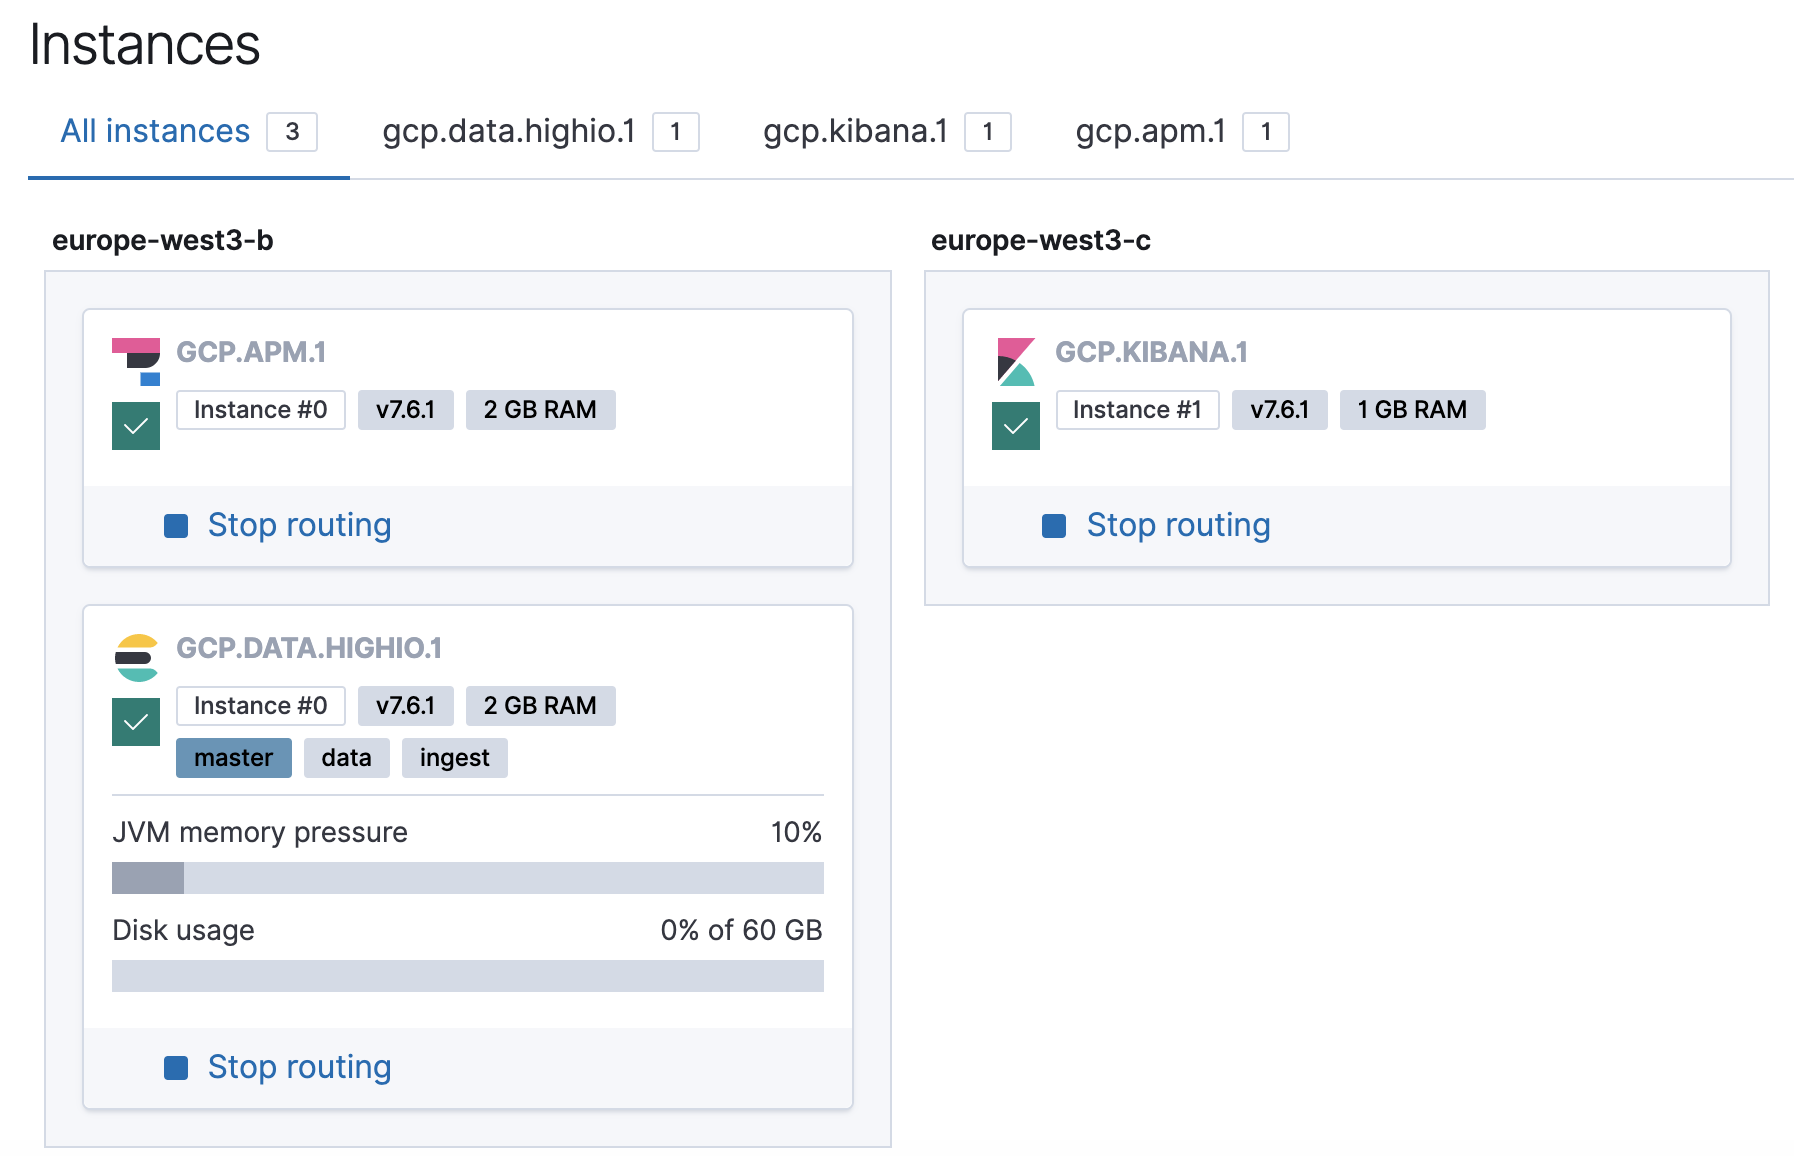 View of the test cluster instances